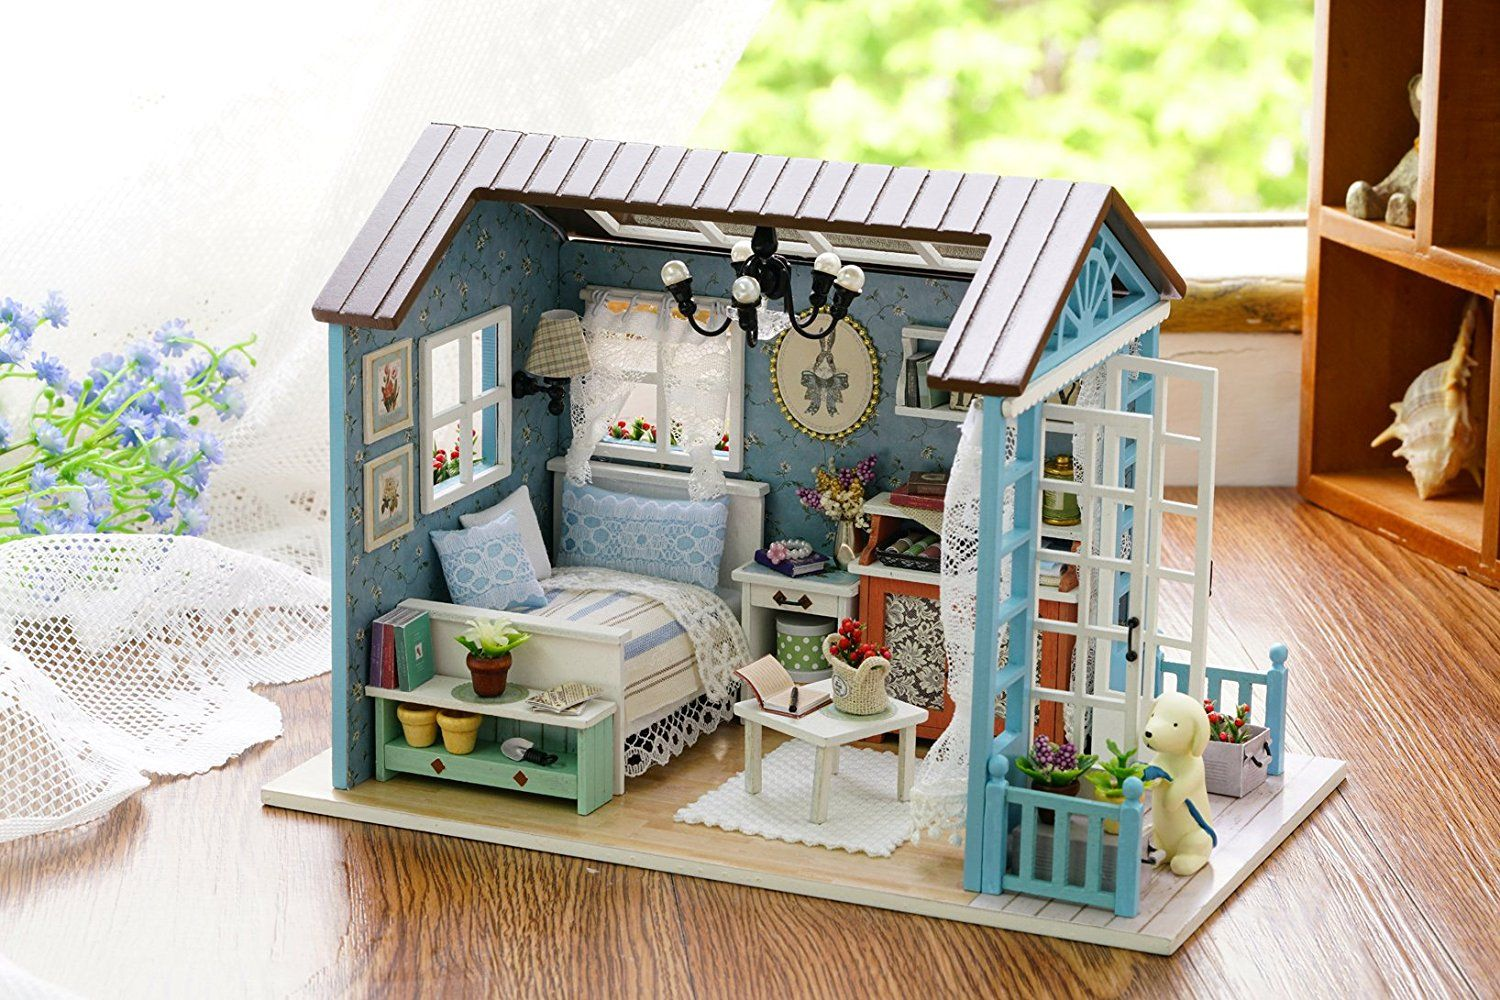 Assembly Wooden 1//24 Scale Miniatures Dollhouse Kit Kids Sky Bedroom Model